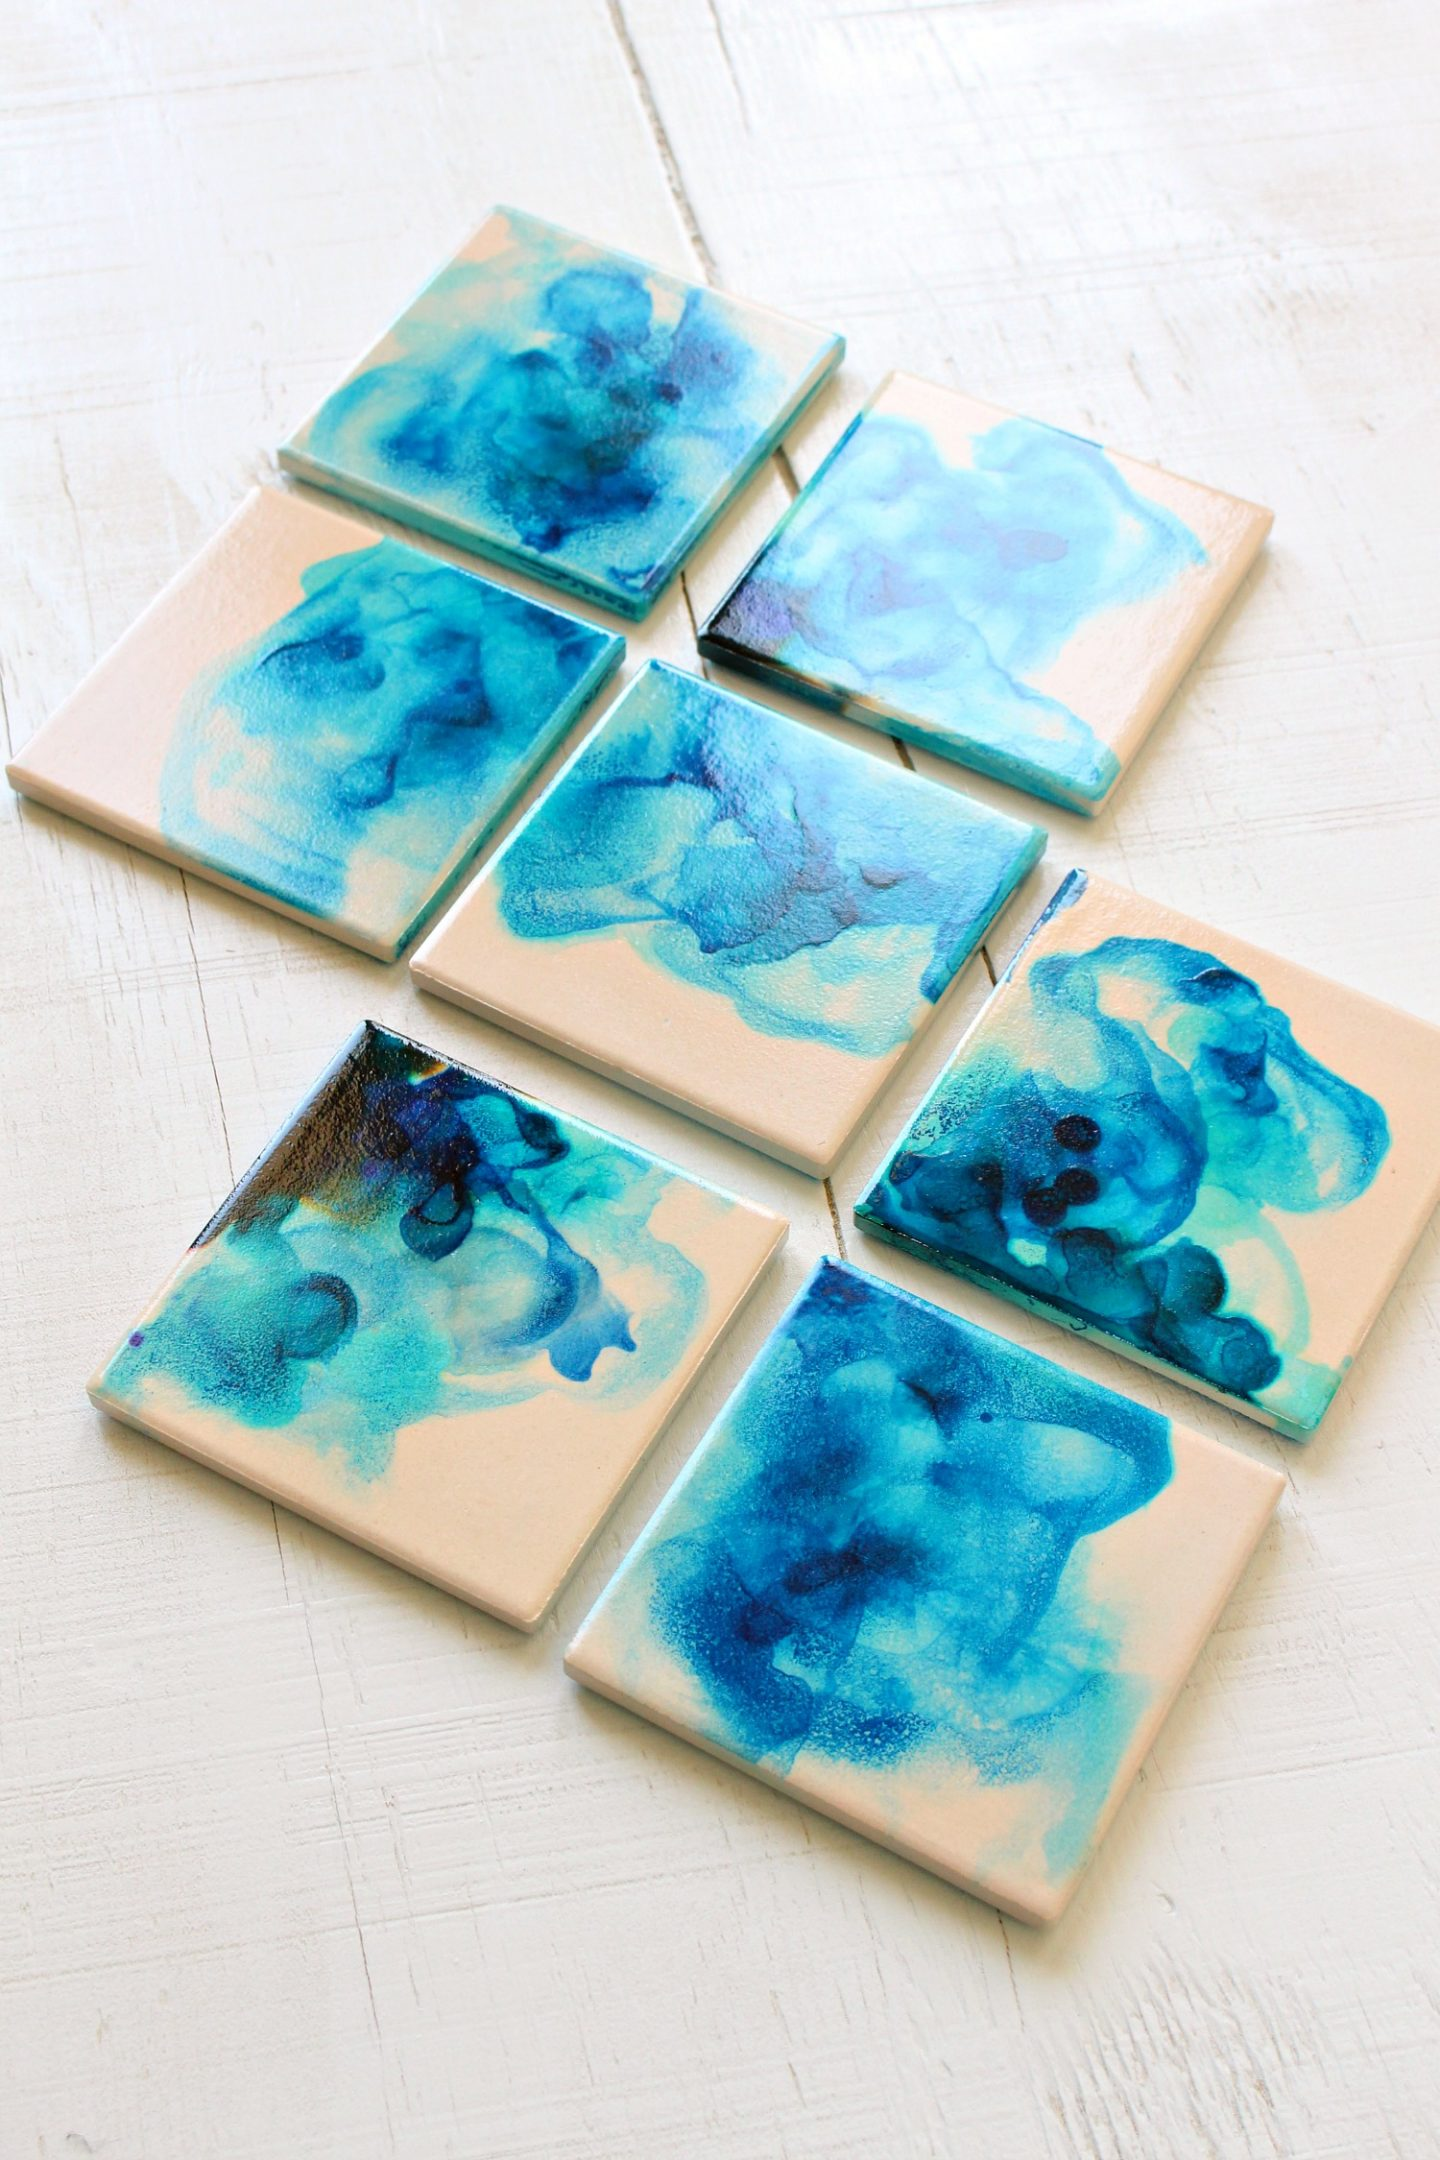 Marbled Diy Alcohol Ink Coasters Dans Le Lakehouse